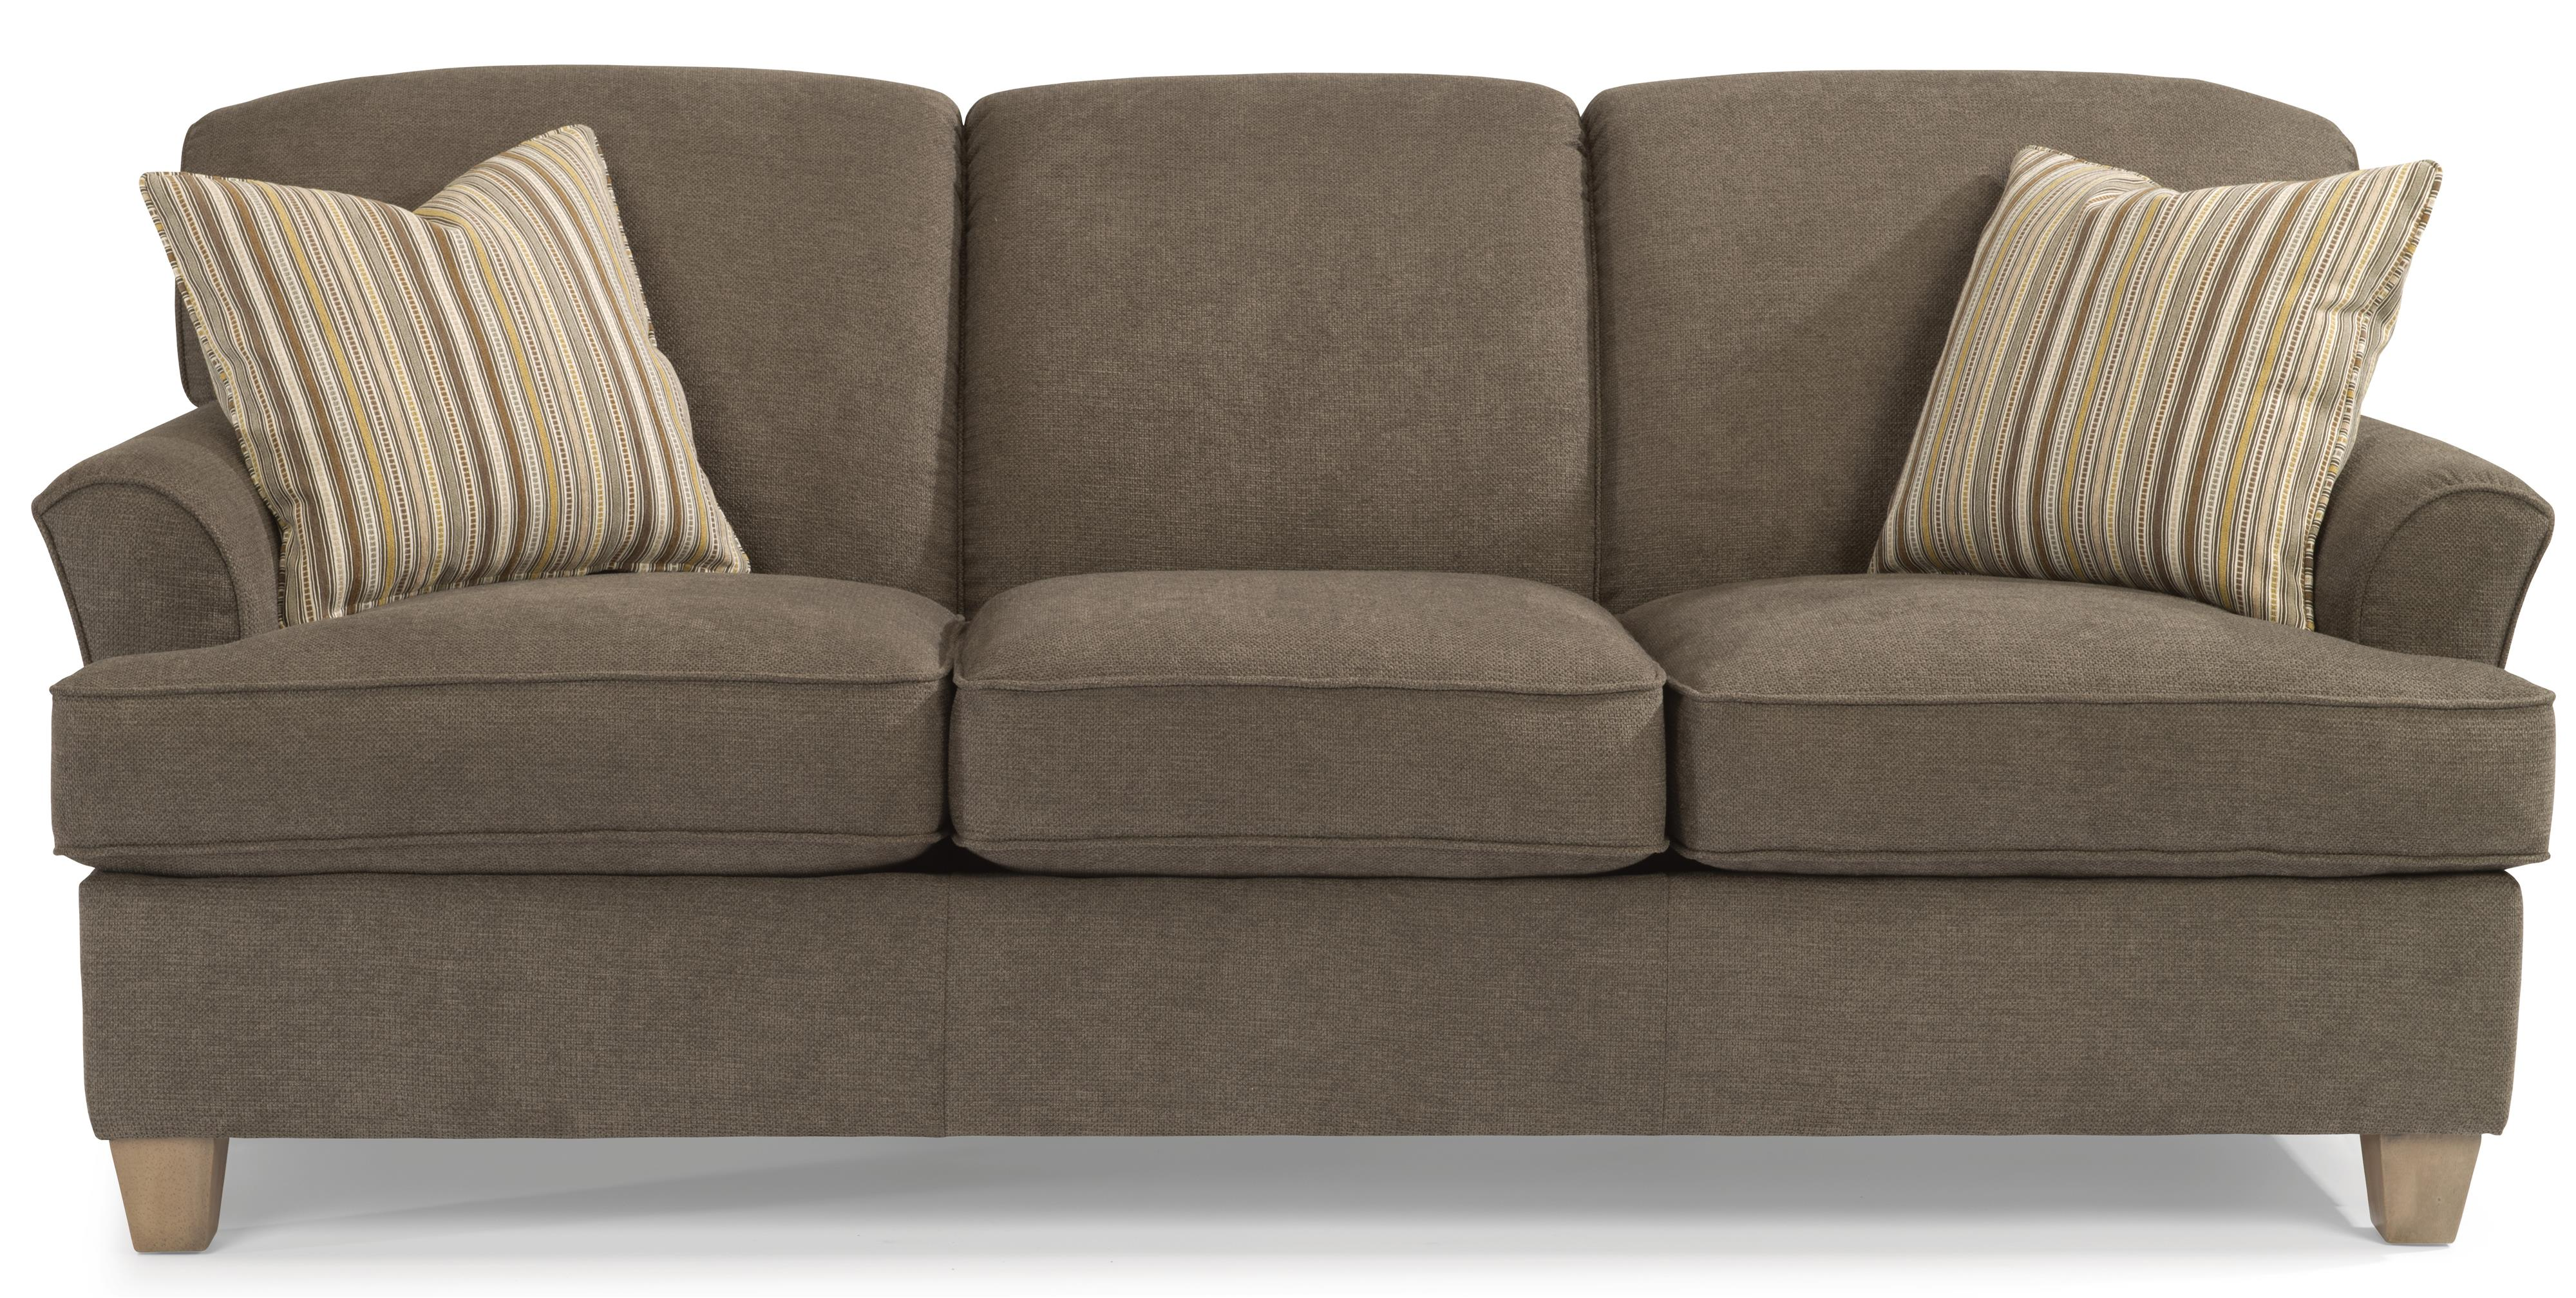 Flexsteel Atlantis Sofa - Item Number: 5713-31-922-01